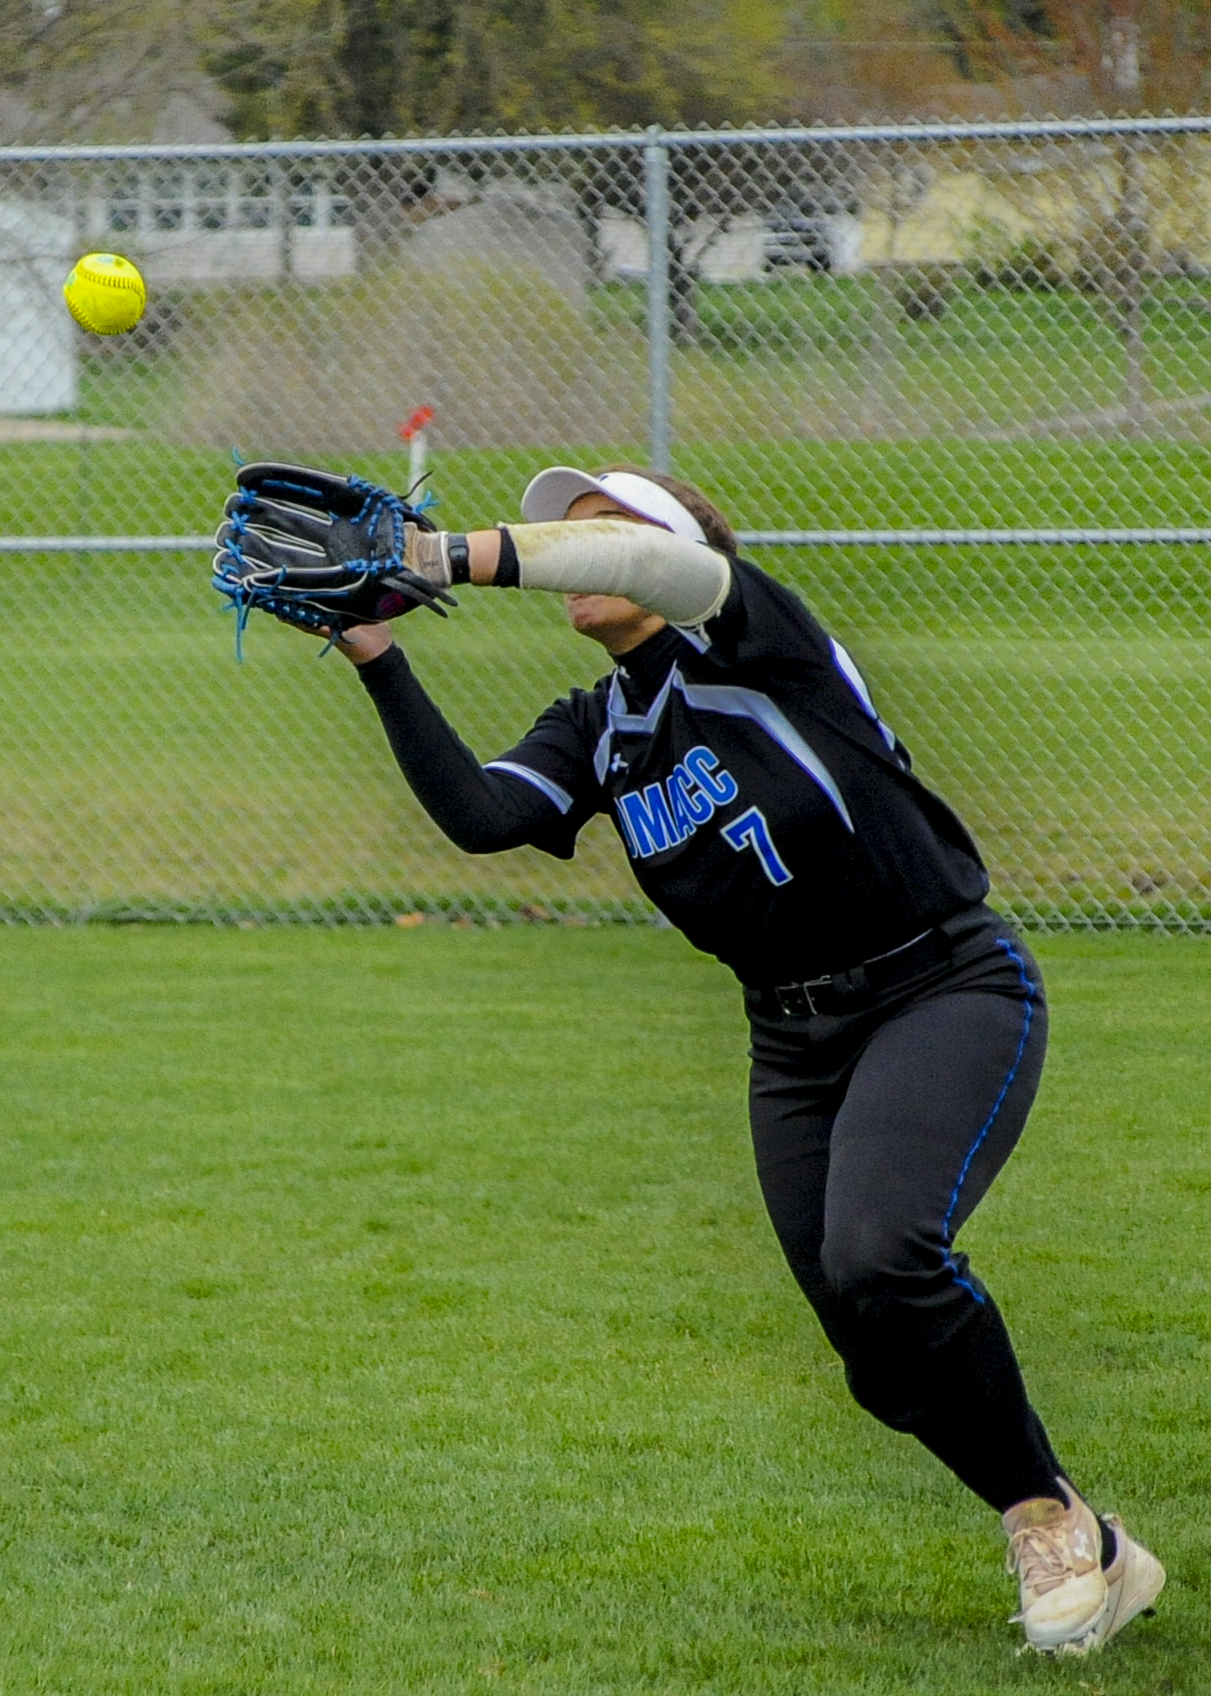 DMACC softball team splits doubleheader against NIACC